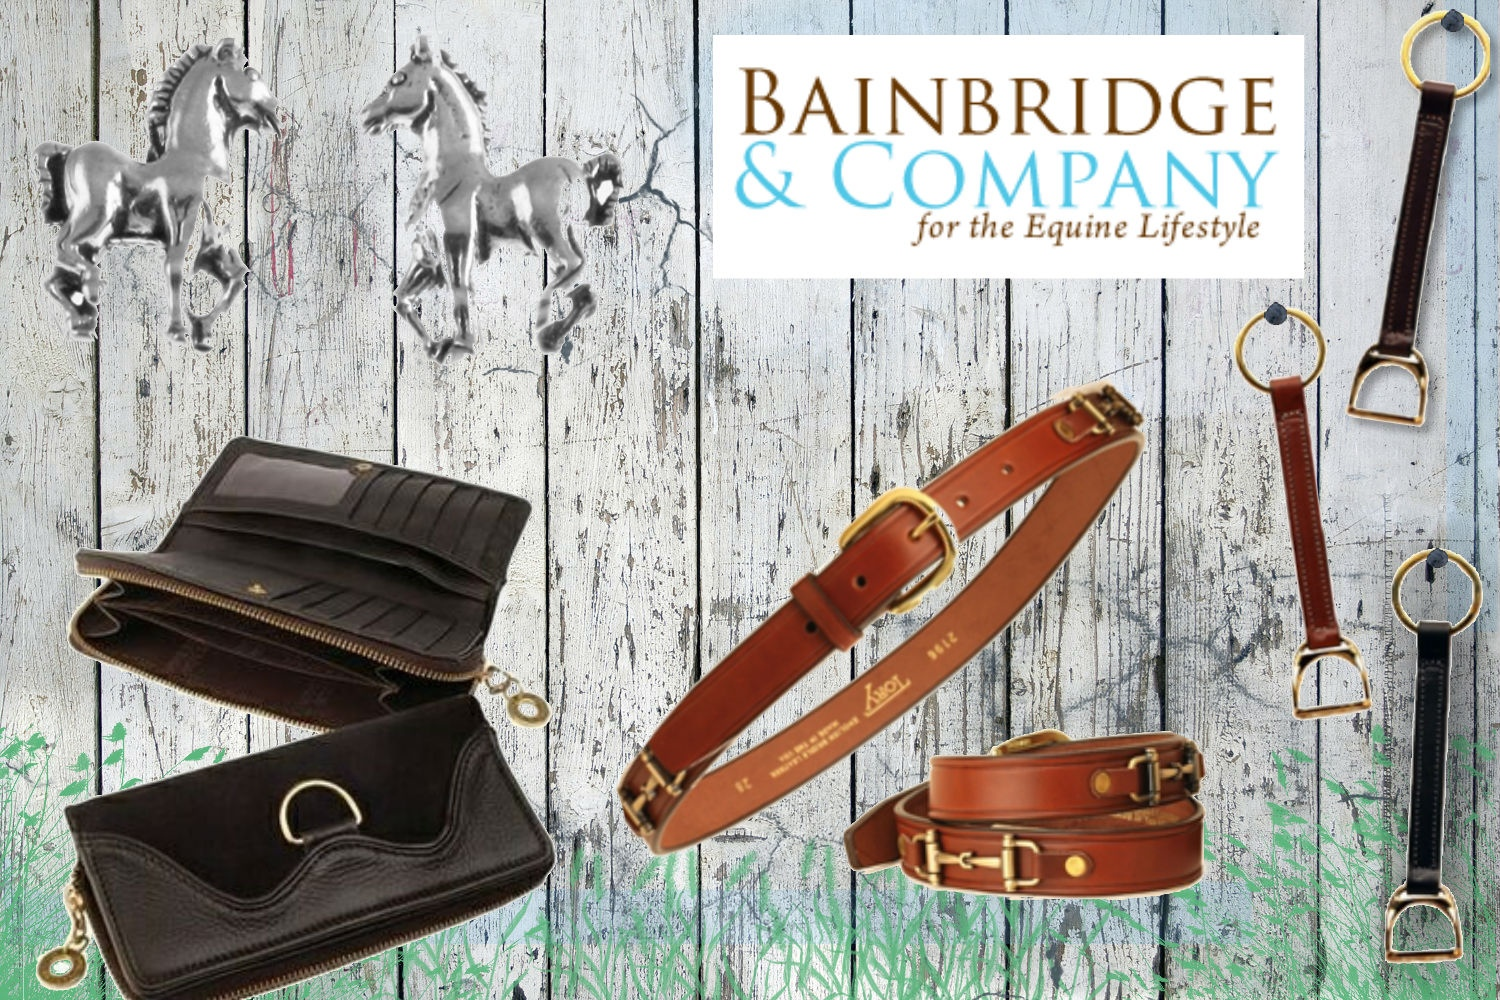 Bainbridge & Co